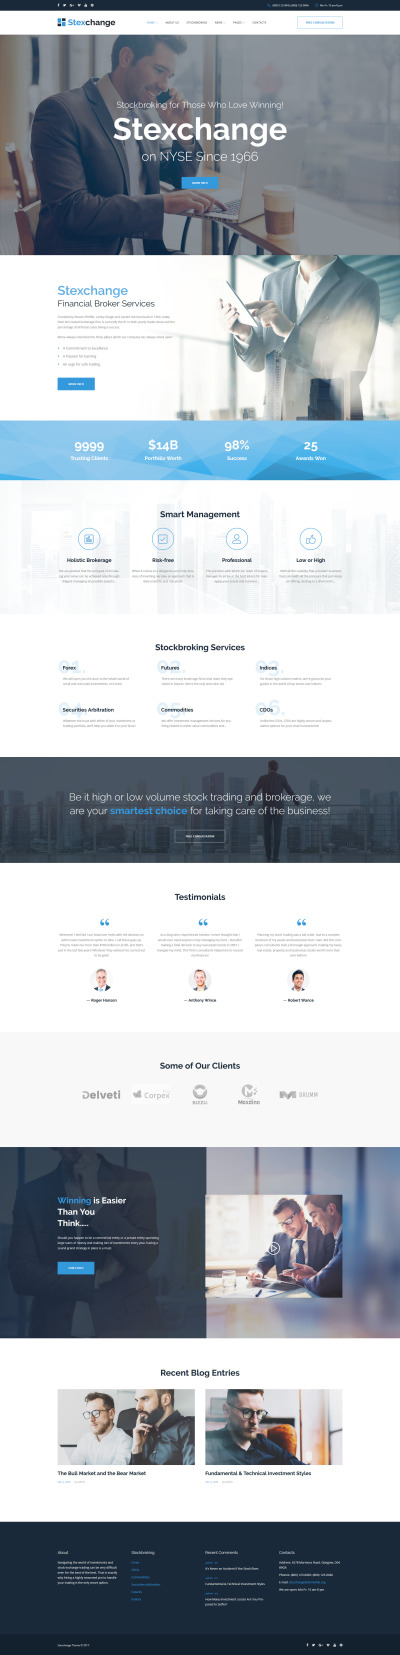 Stexchange - Financial Broker Services Responsive